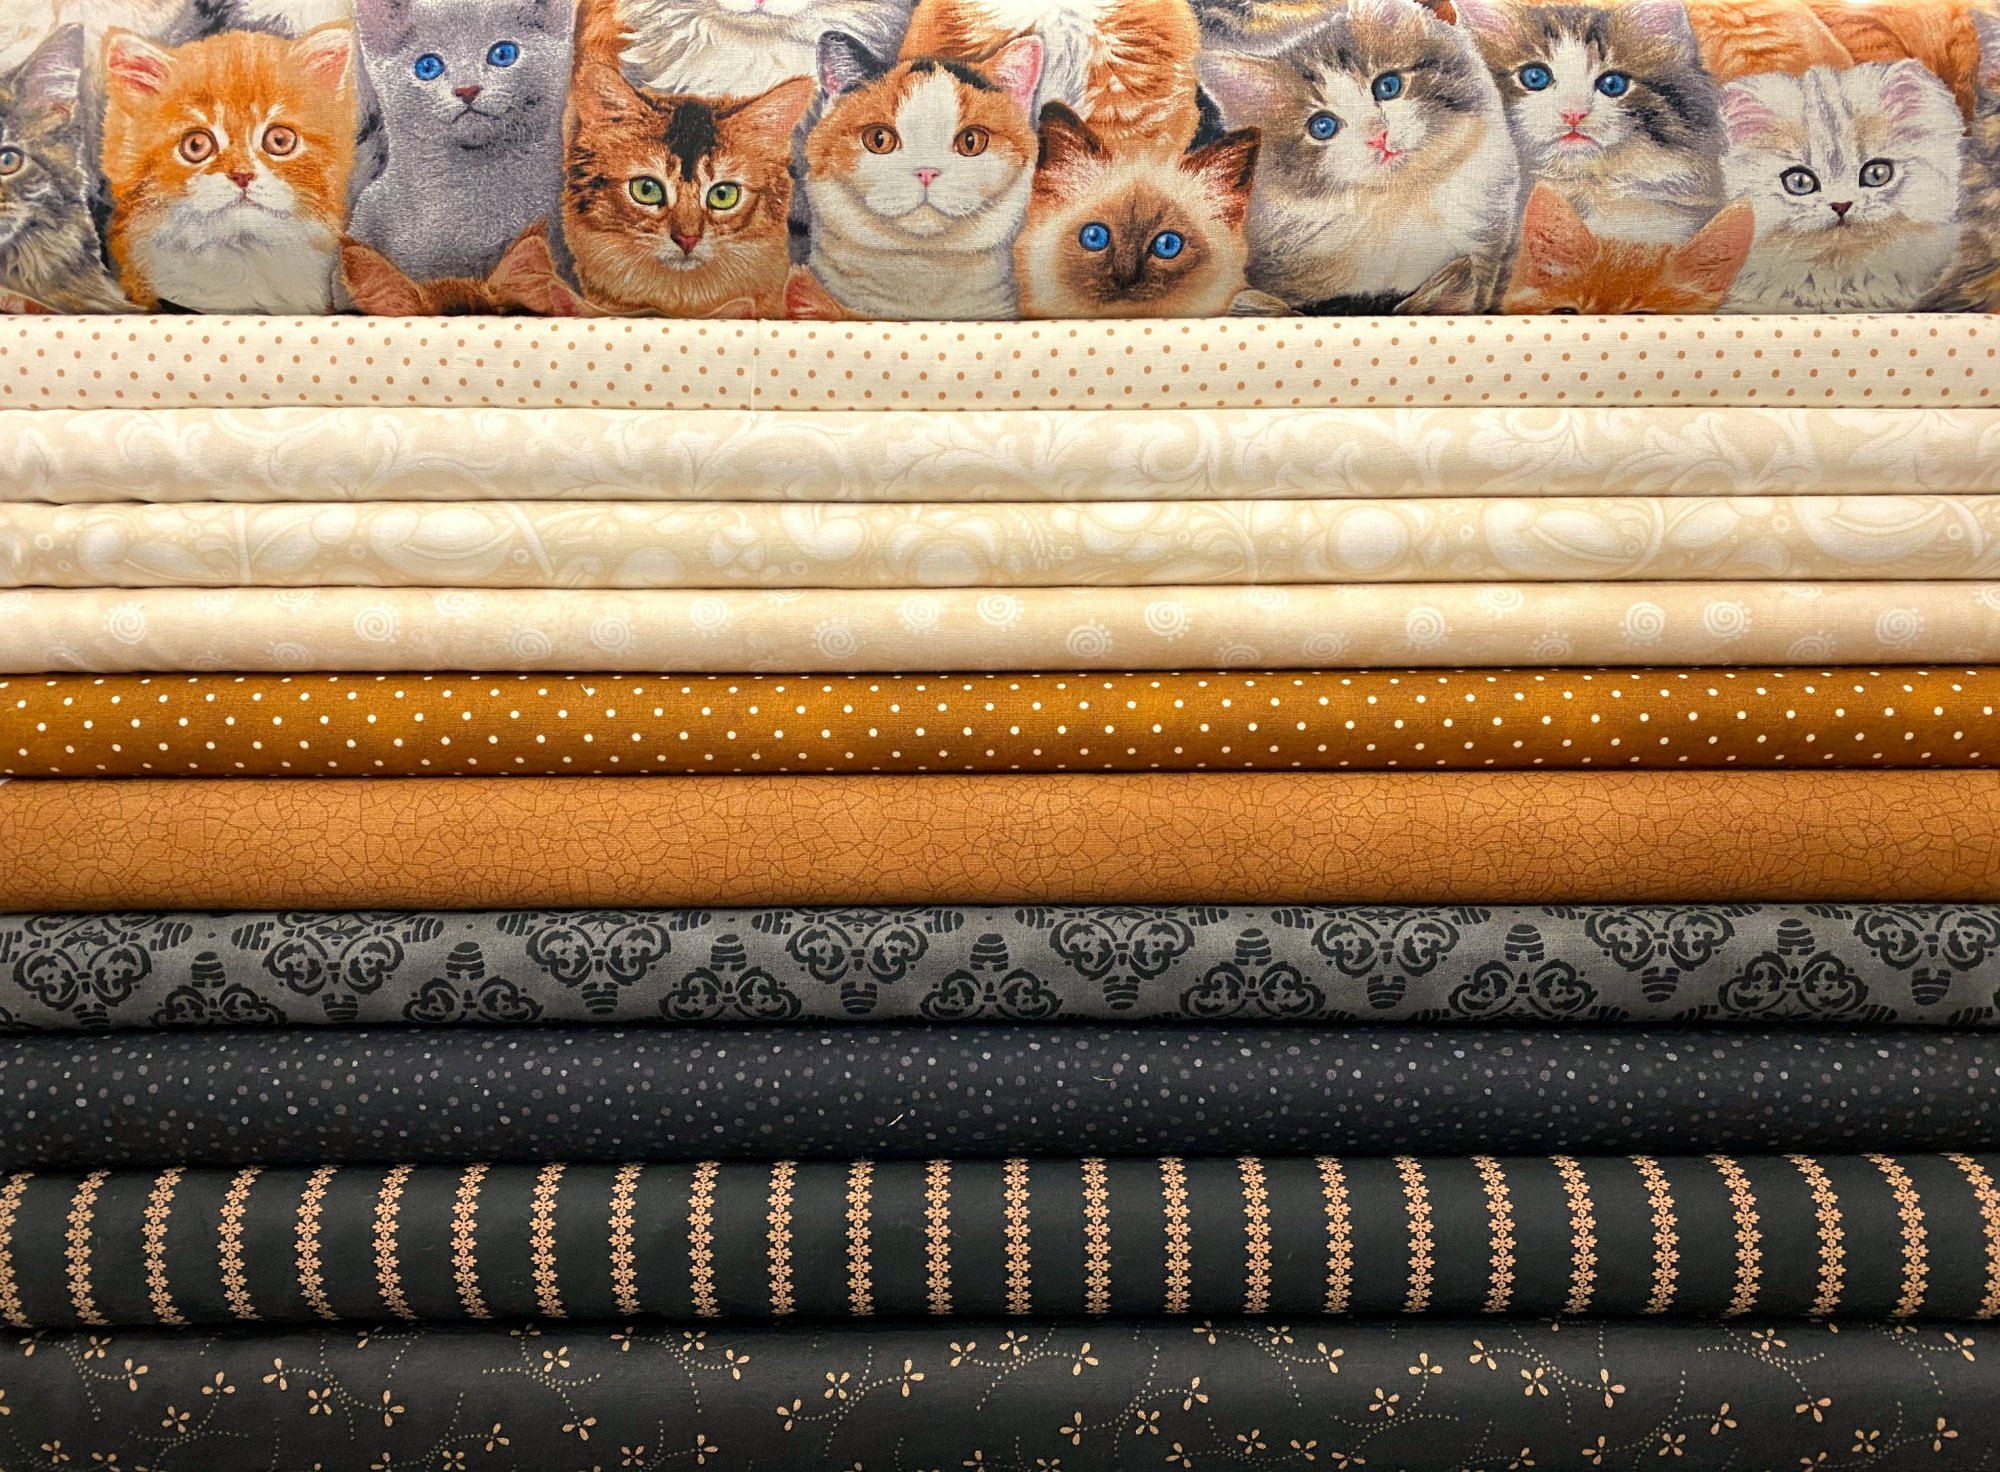 Kitty Fat Quarter Bundle - 11 Fat Quarters